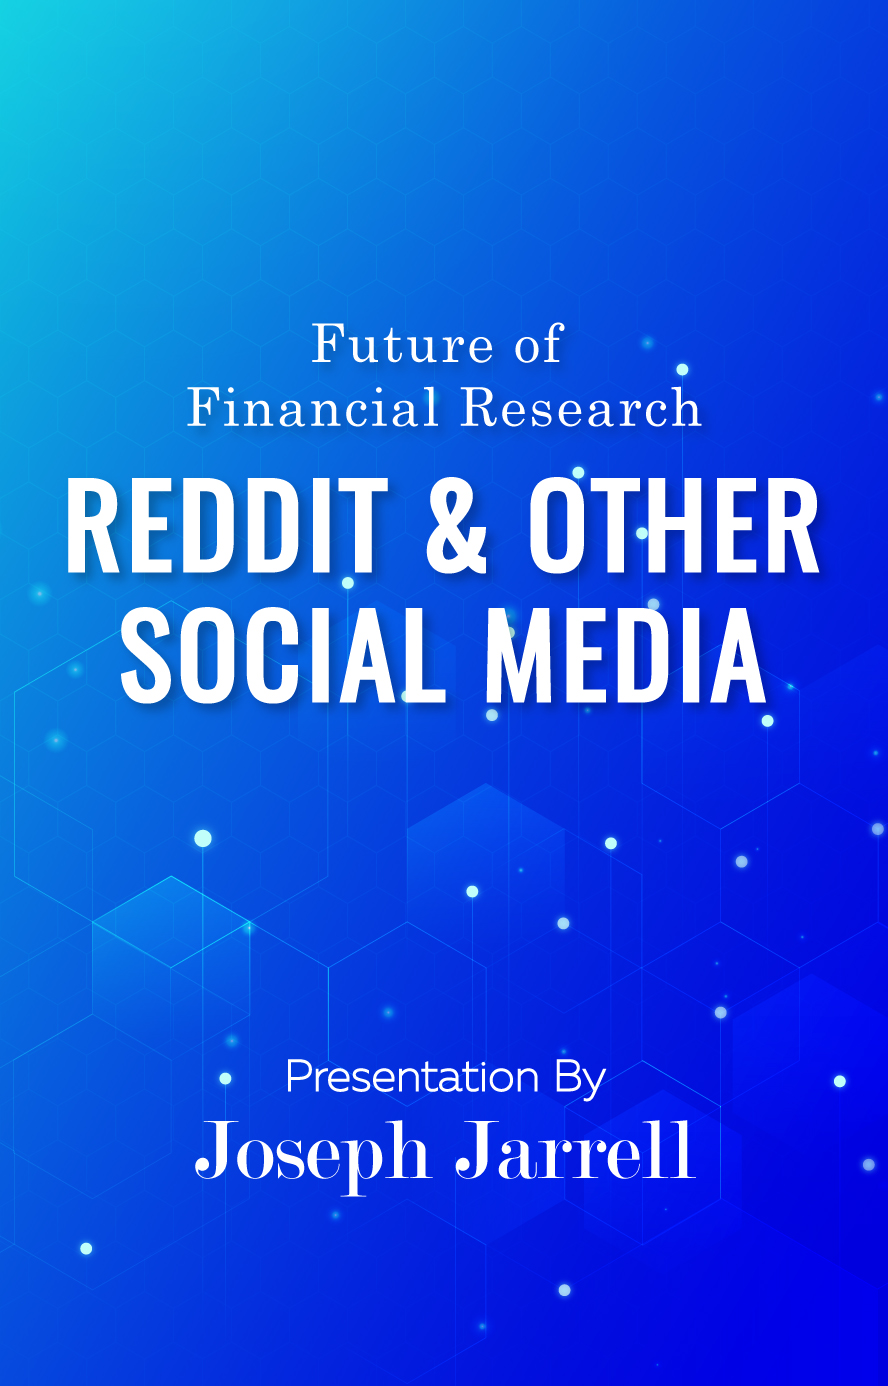 Future of Financial Research